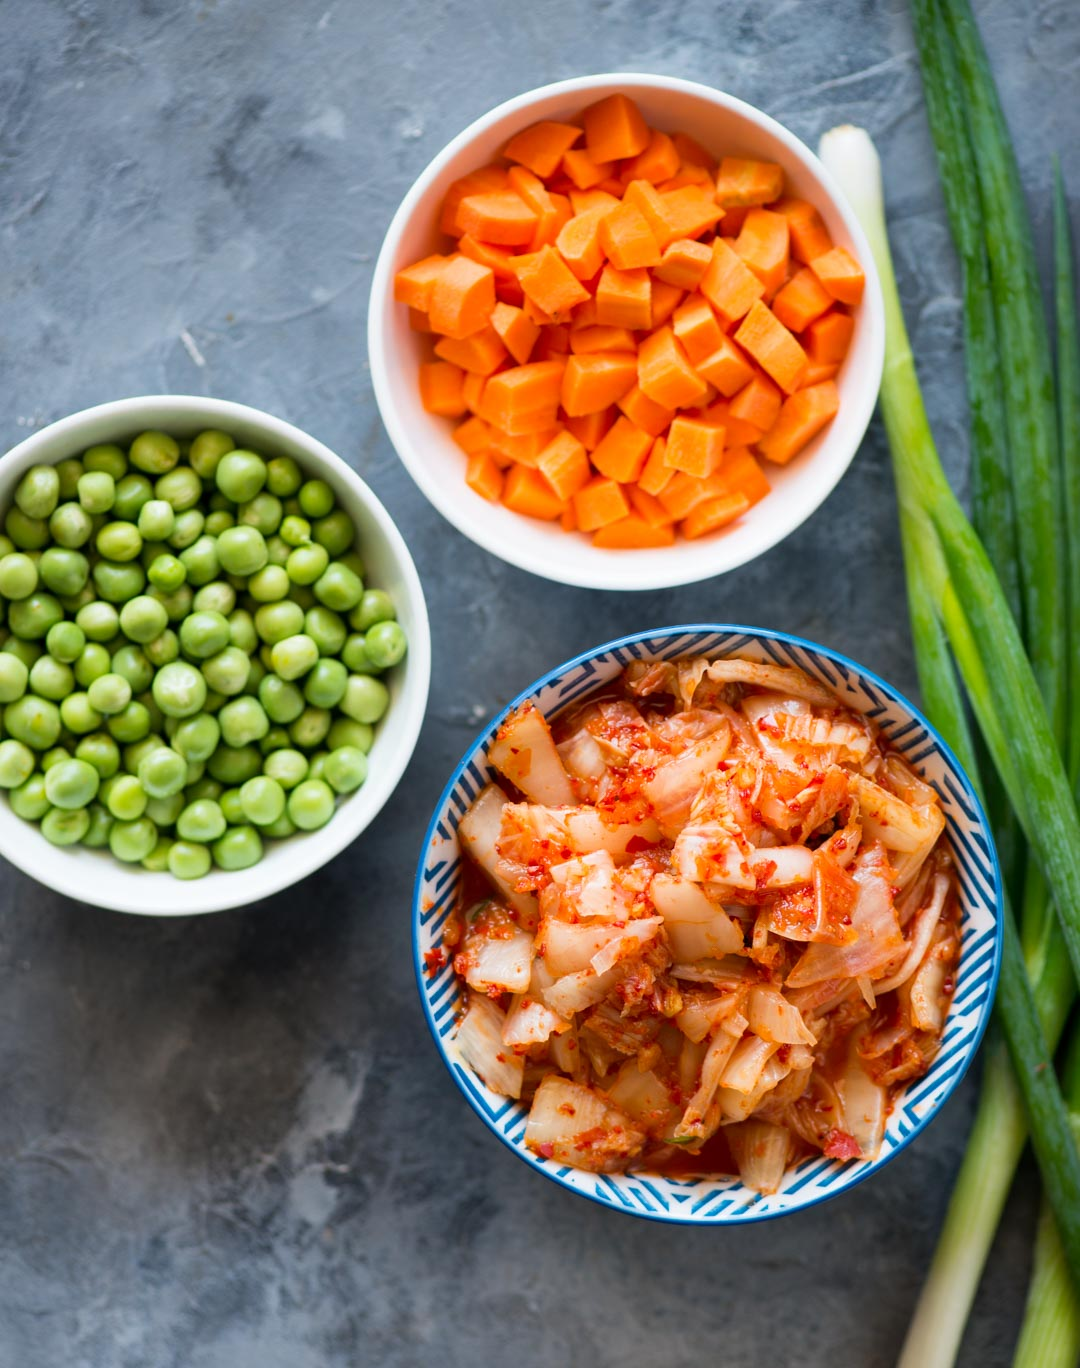 Quick and easy Kimchi Fried rice with tons of flavour from Kimchi, Garlic, ginger and gochujang. Throw in some peas, carrots and top it with sunny side up for a delicious meal.